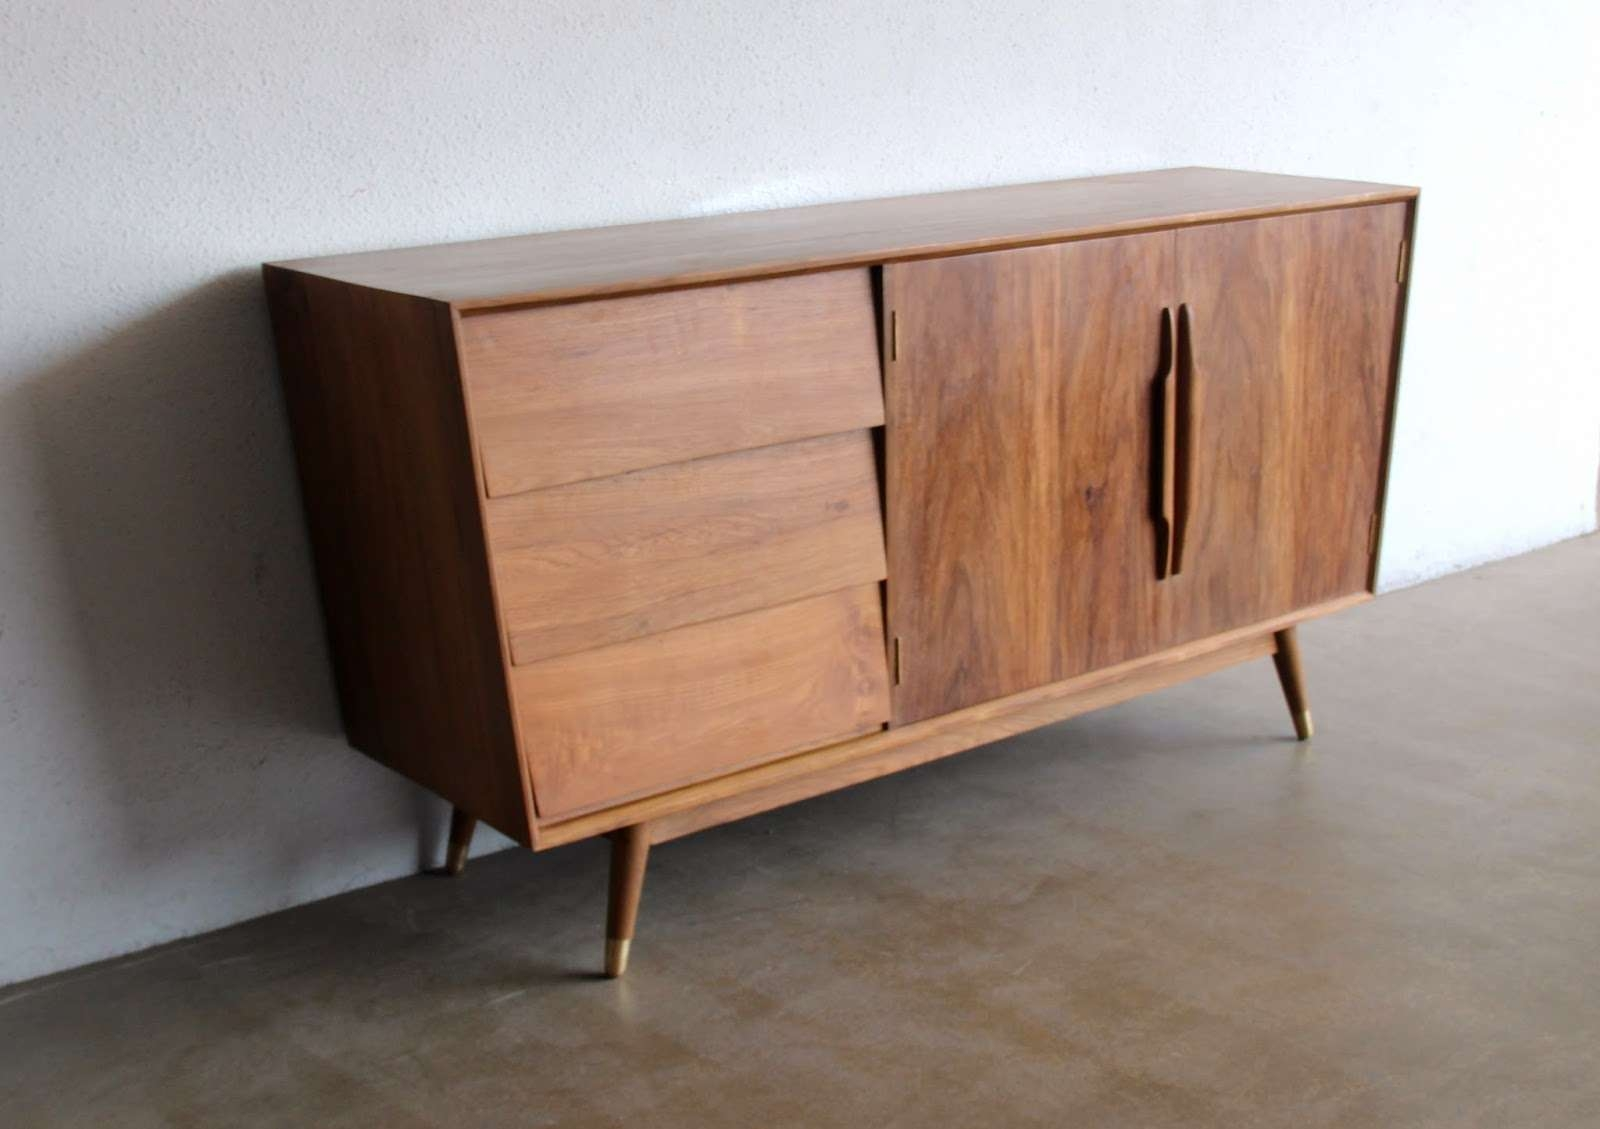 Second Charm Furniture – Mid Century Modern Influence | Second Charm Inside Mid Century Modern Sideboards (View 17 of 20)